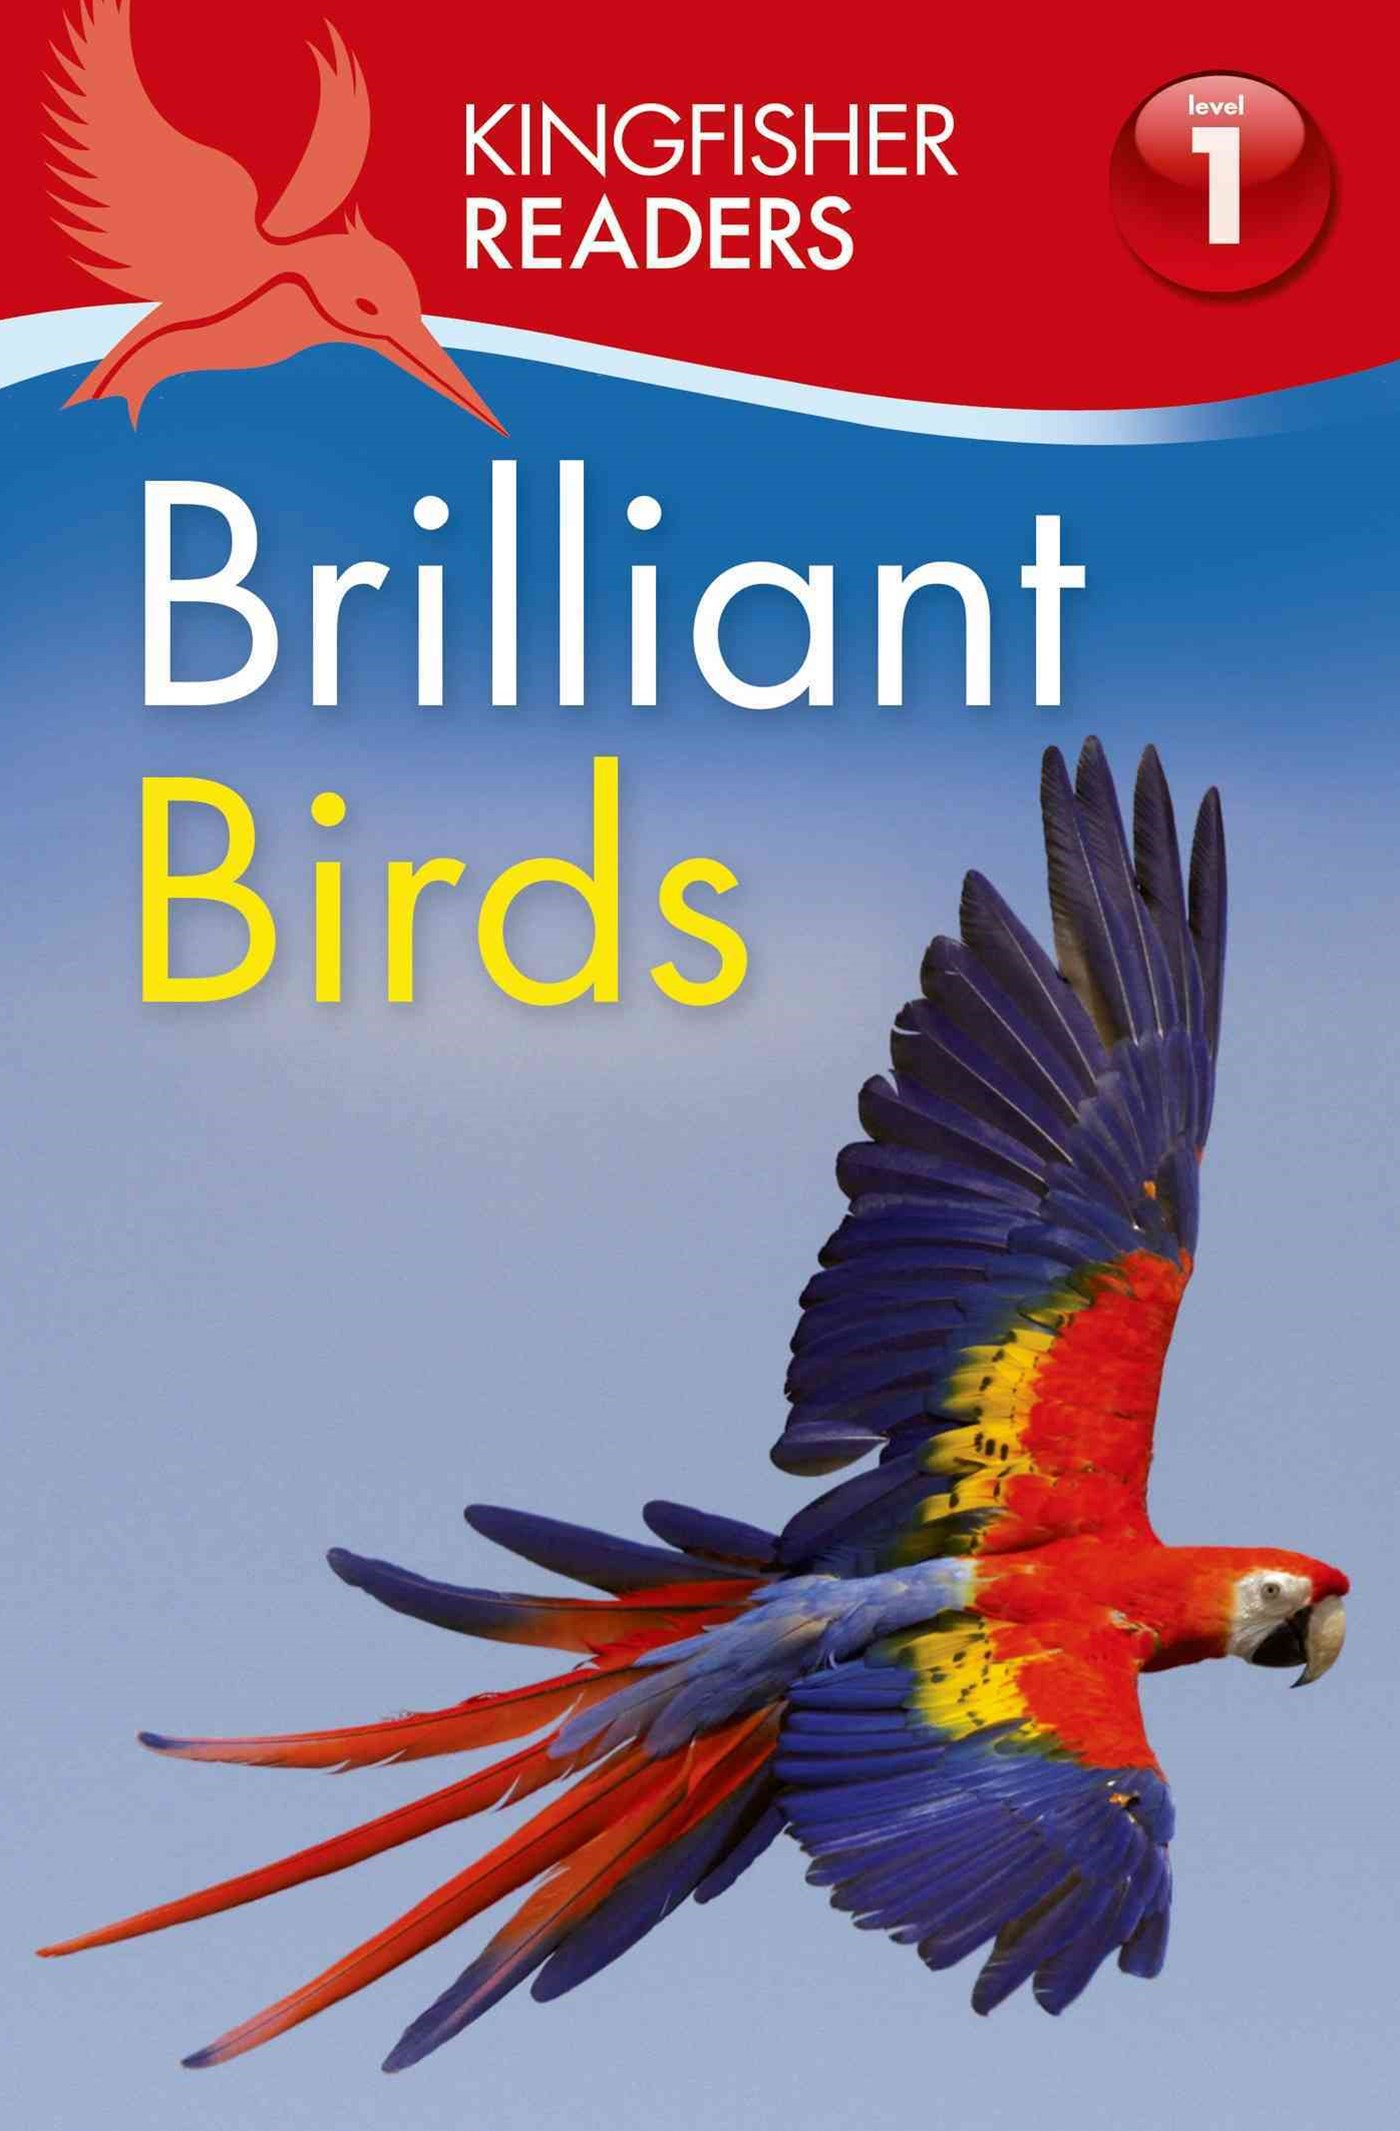 Kingfisher Readers L1: Brilliant Birds